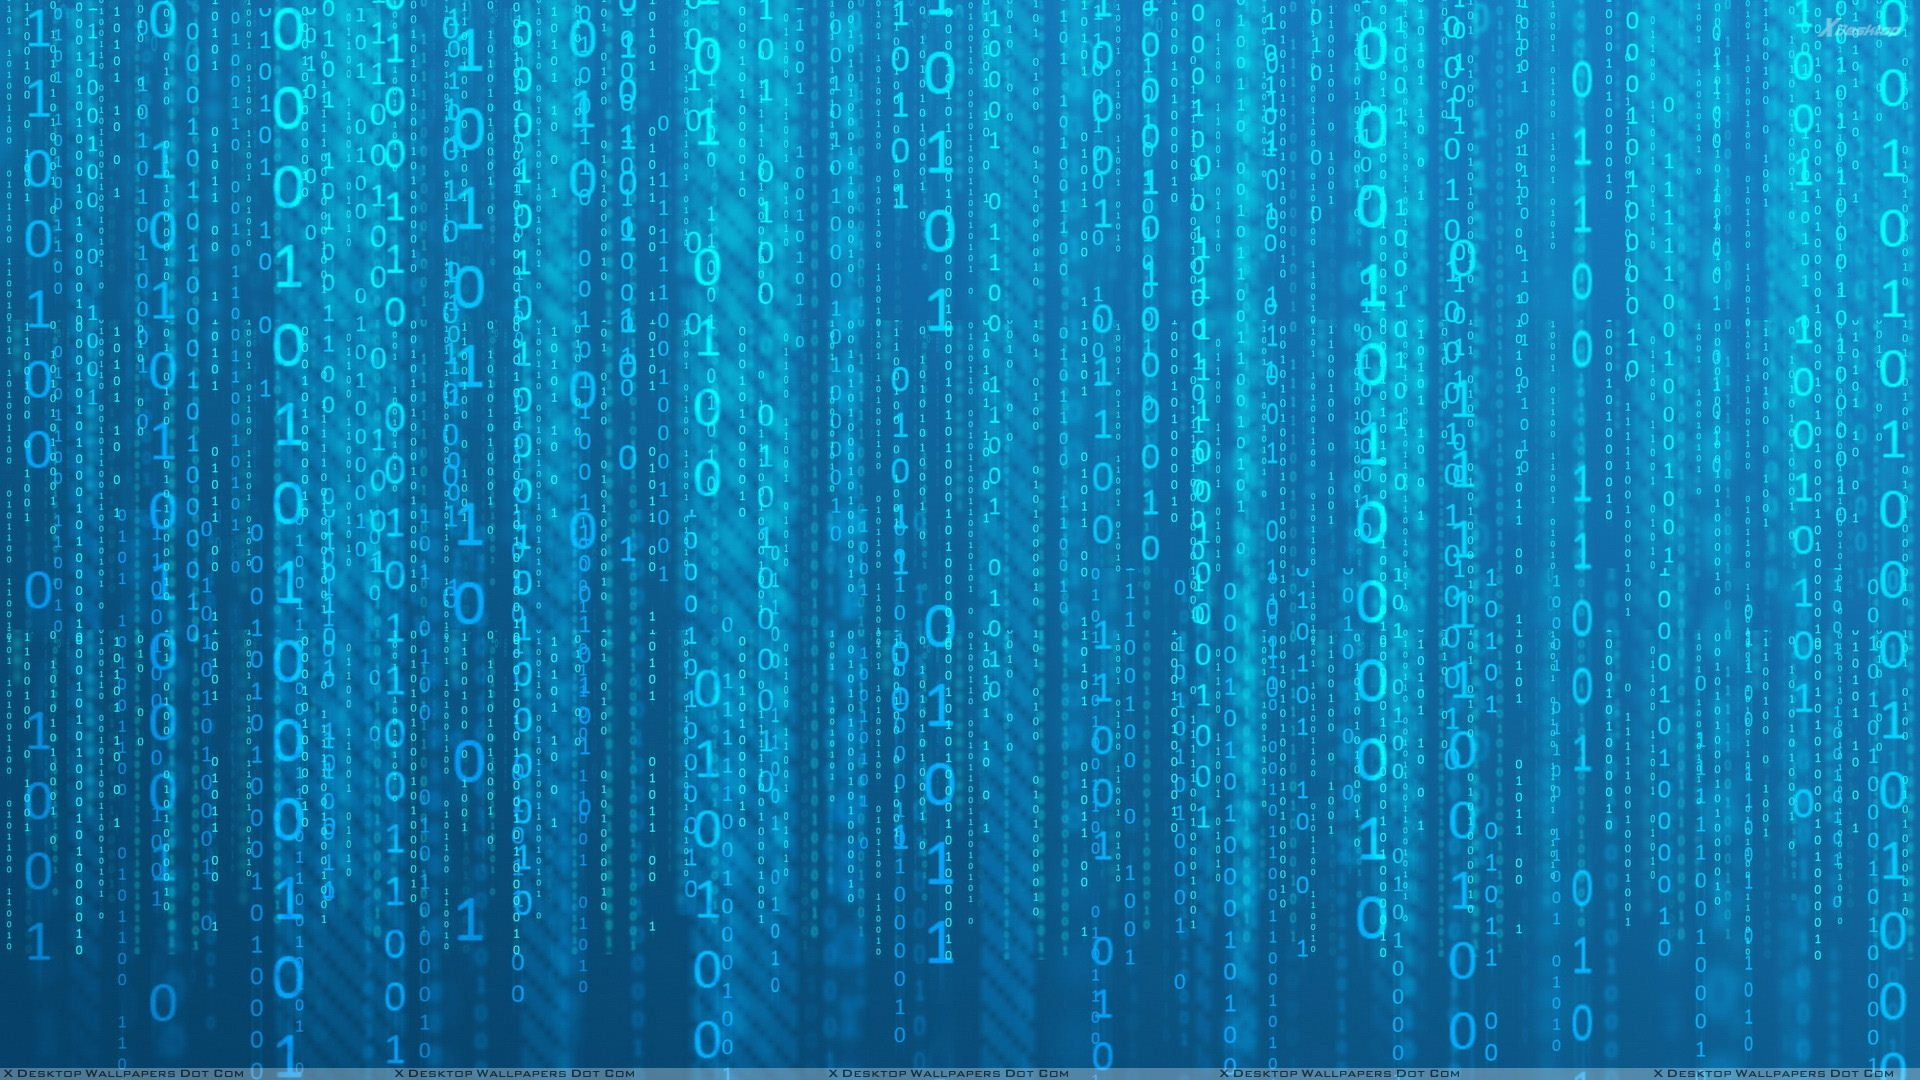 Binary Technology Wallpaper Blue Background